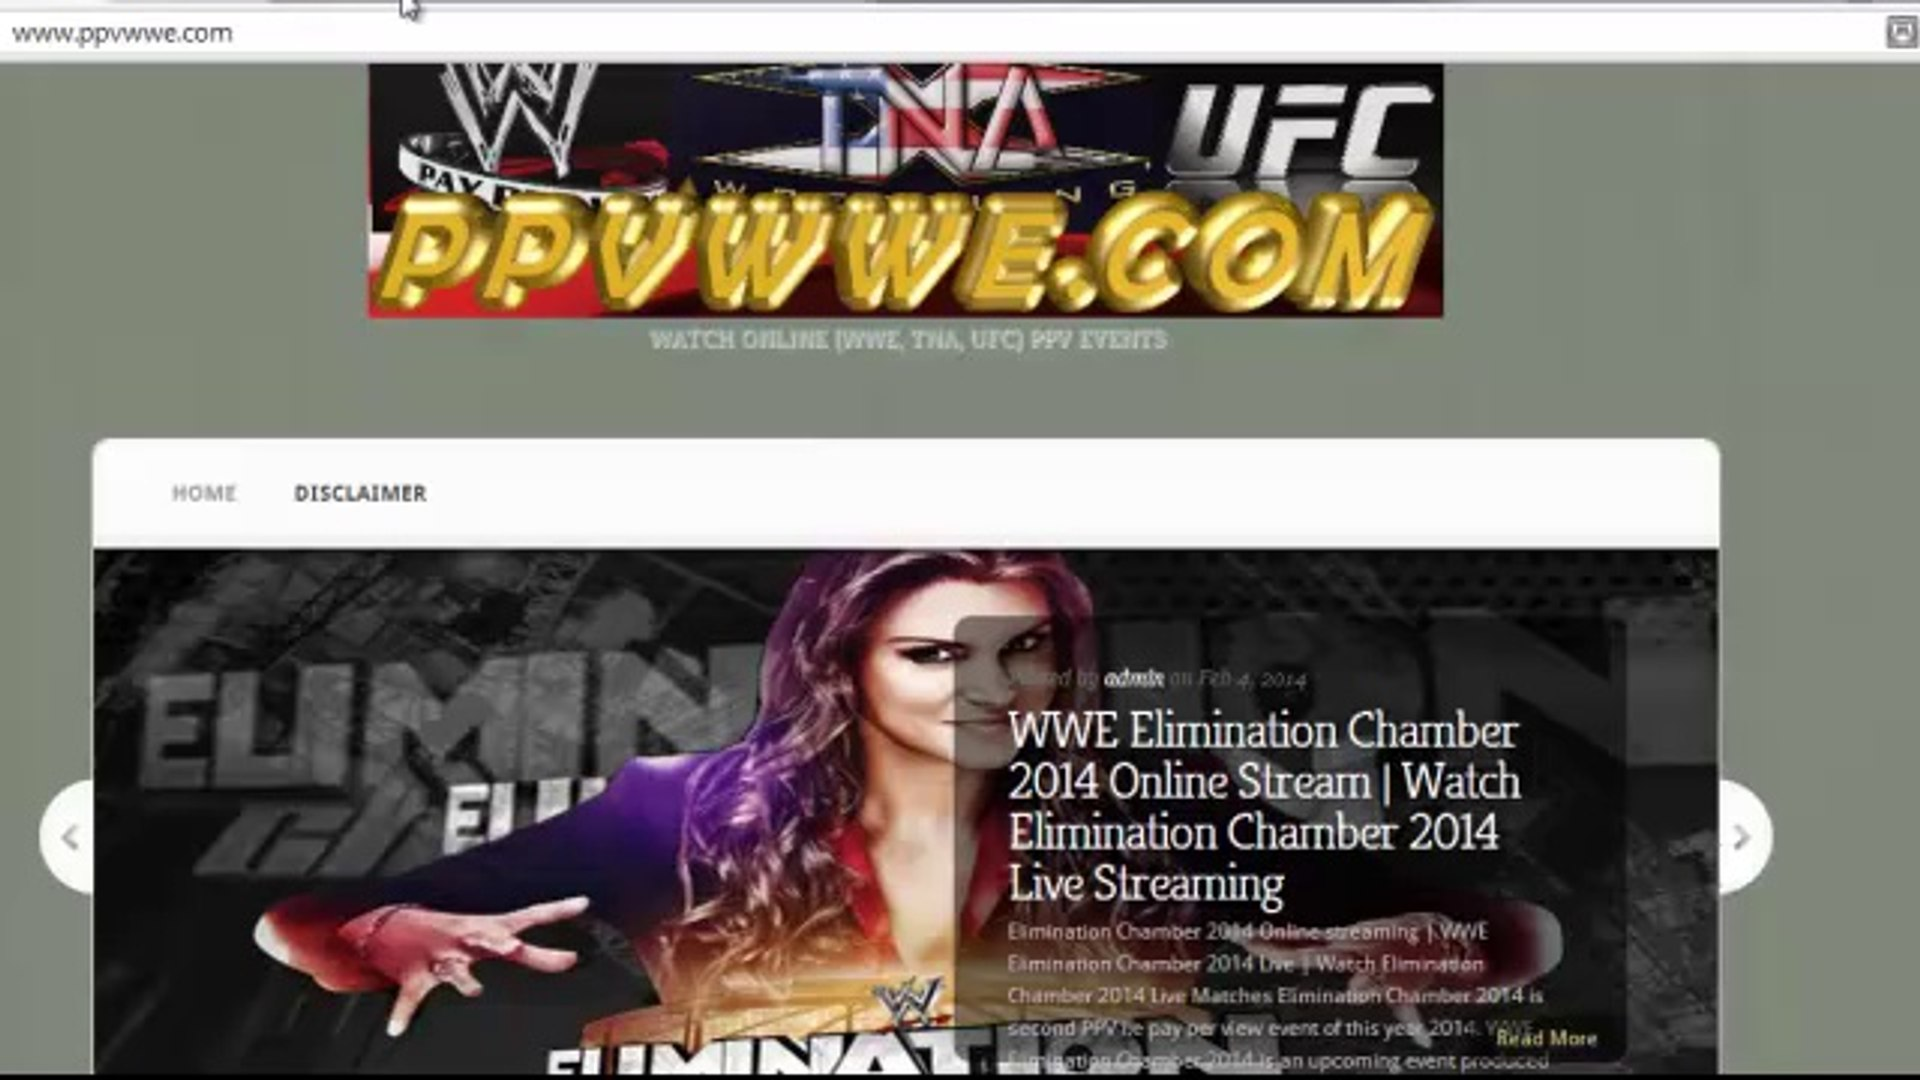 Watch Elimination Chamber 2014 Online Matches Streaming in HD | WWE Elimination Chamber 2014 Live